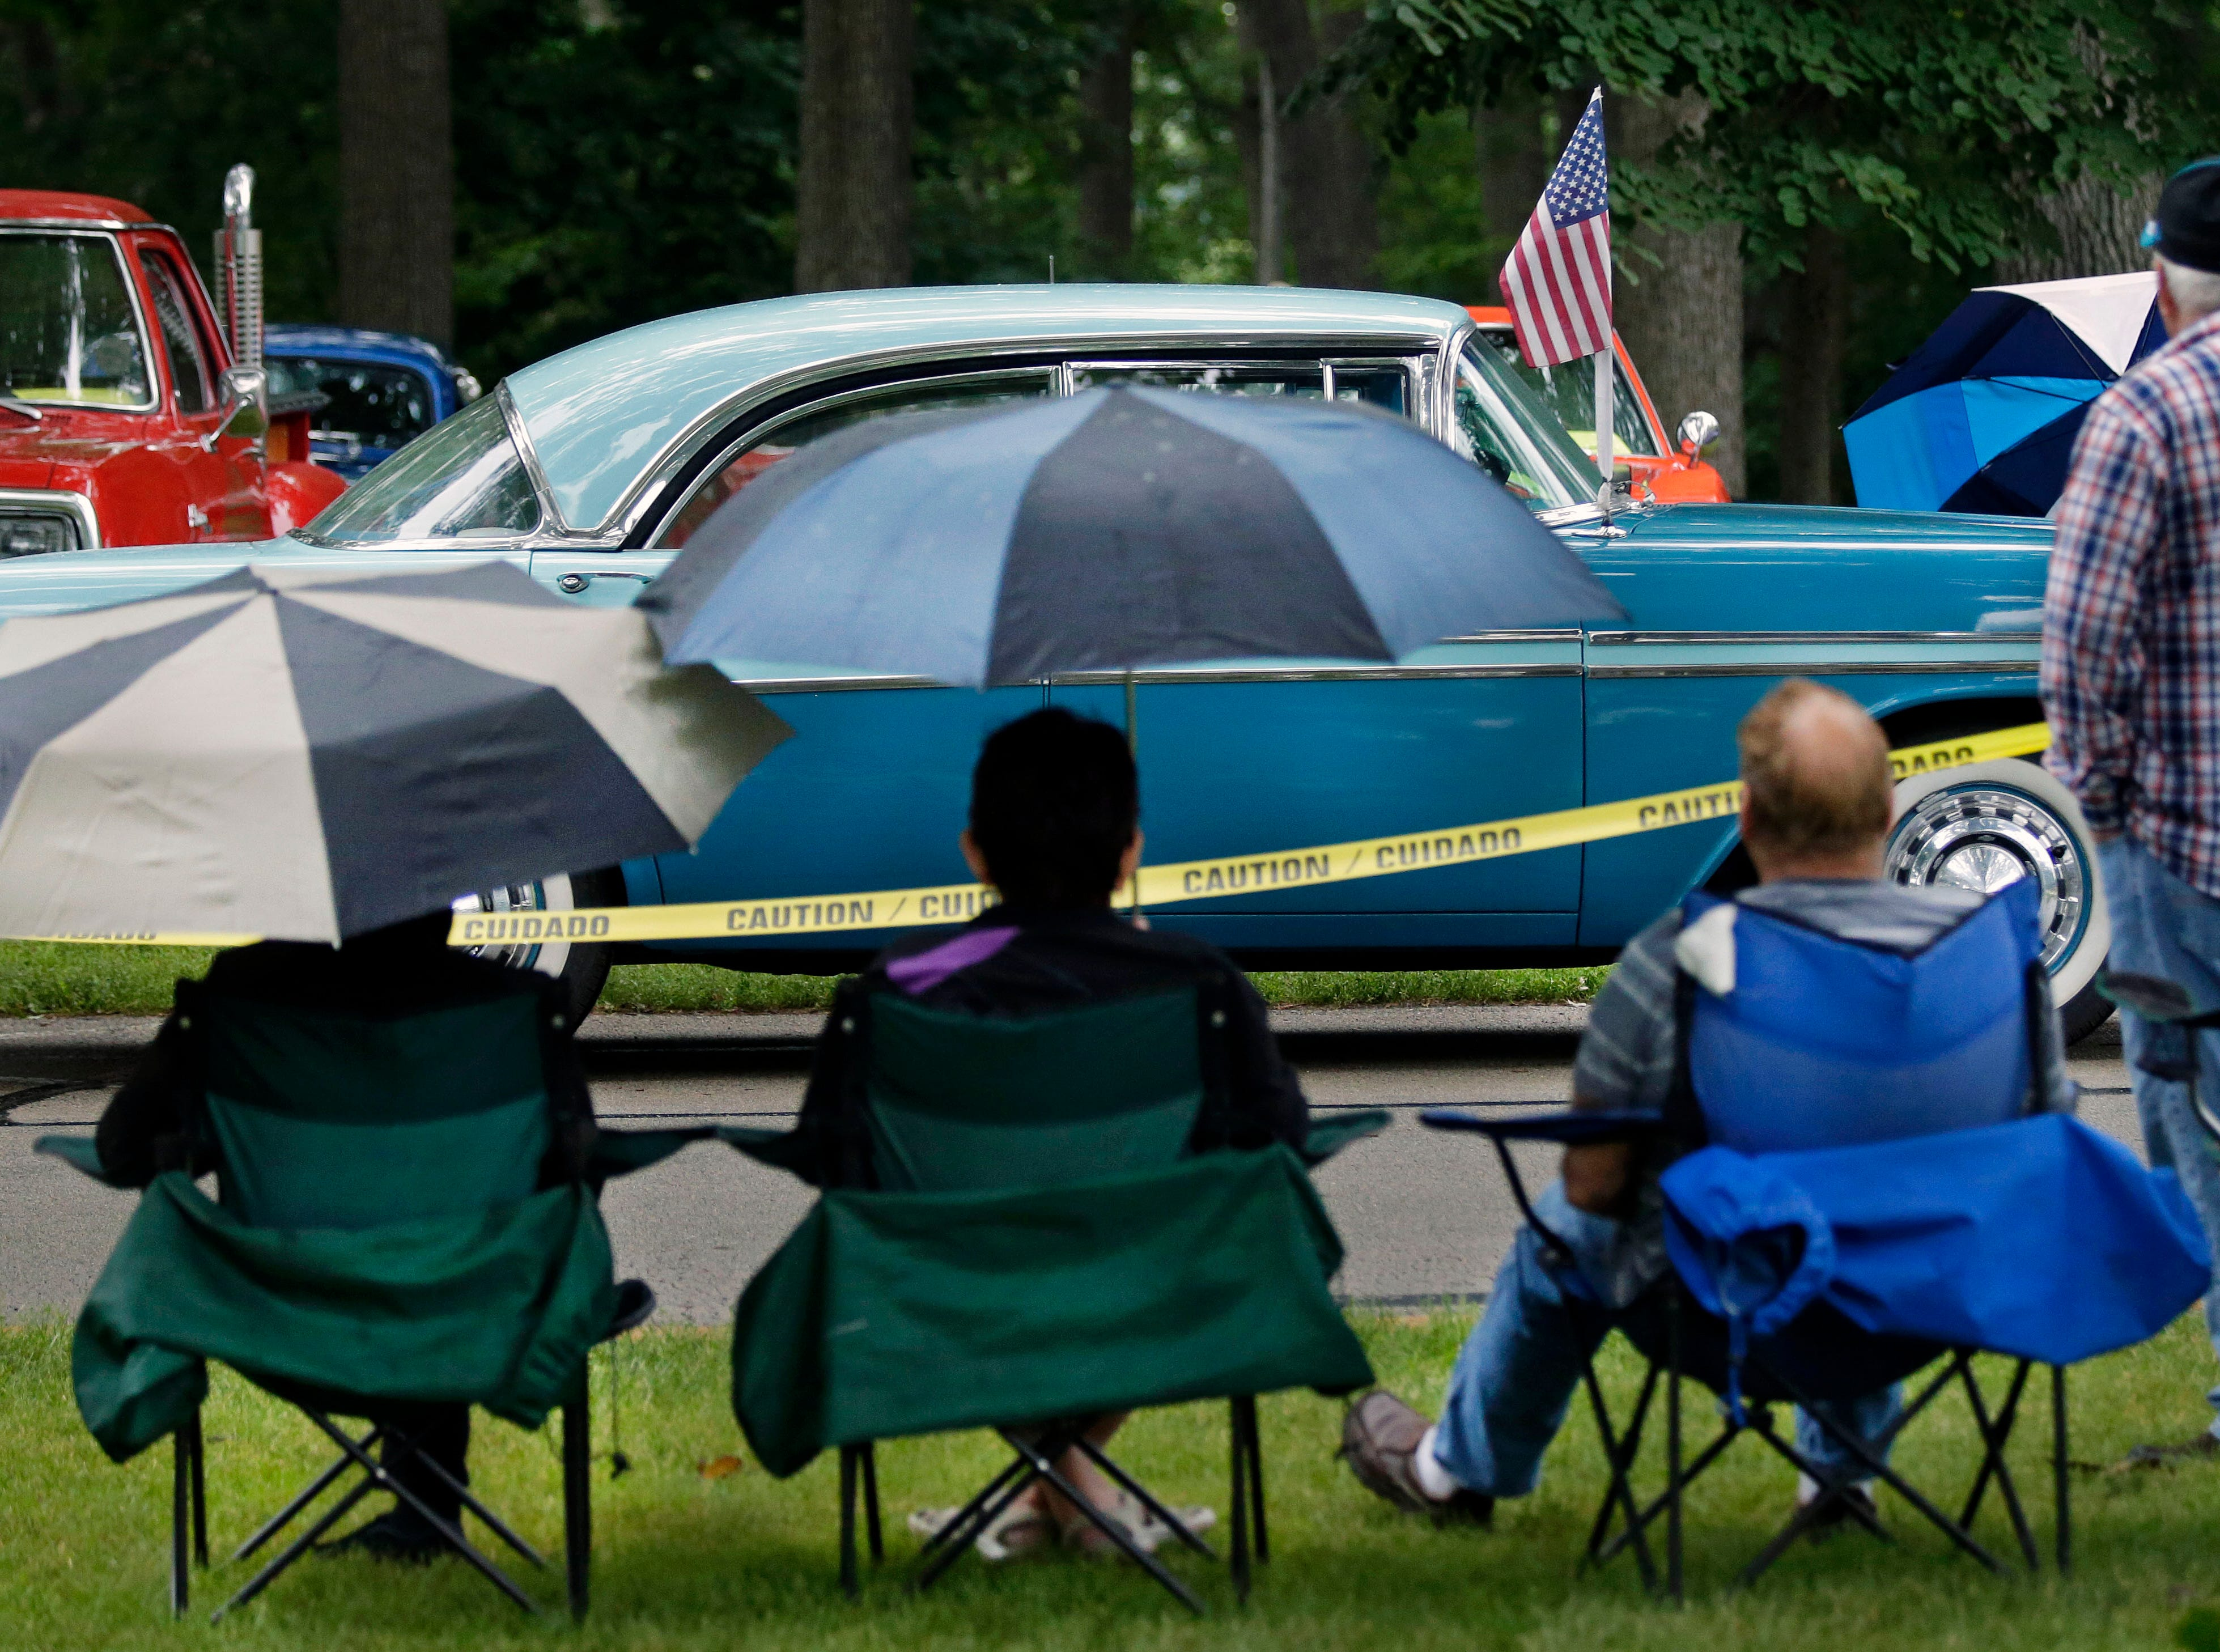 A Chevrolet Bel Air arrives while car fans look on as the Appleton Old Car Show and Swap Meet takes place Sunday, July 22, 2018, at Pierce Park in Appleton, Wis.